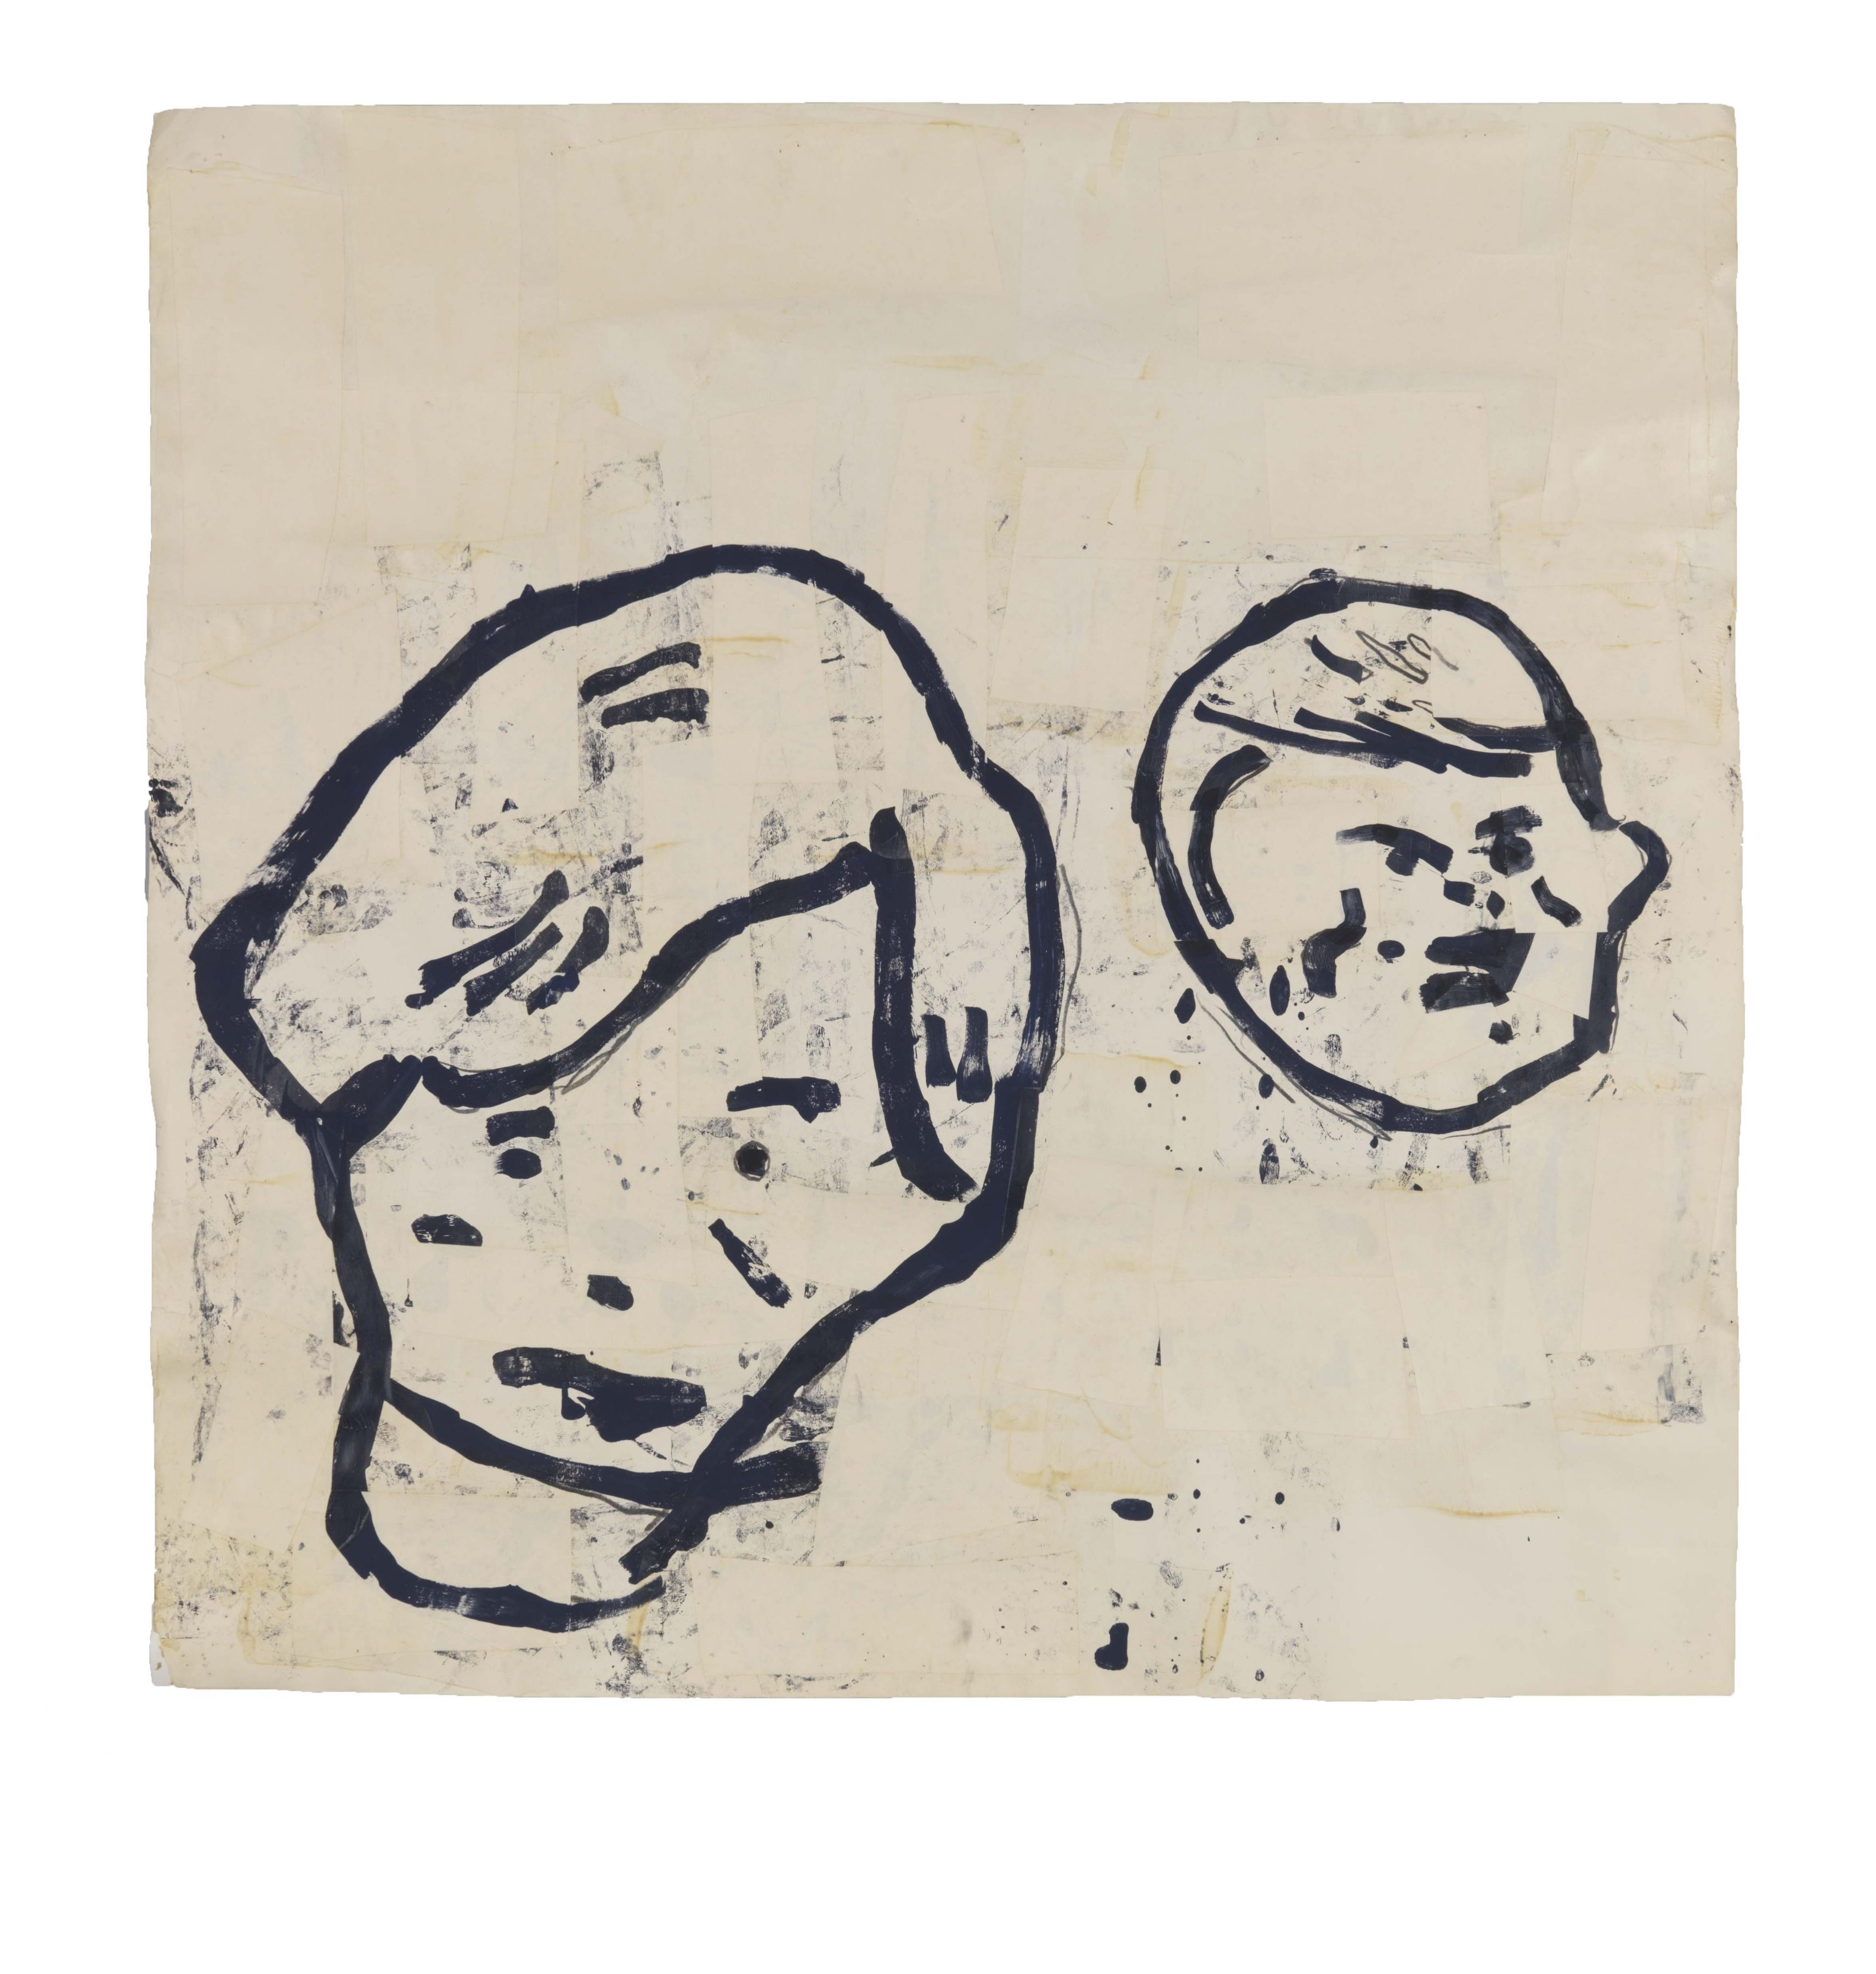 Untitled (2 Boys), 1983, Acrylic, tempera, graphite and paper collage on paper